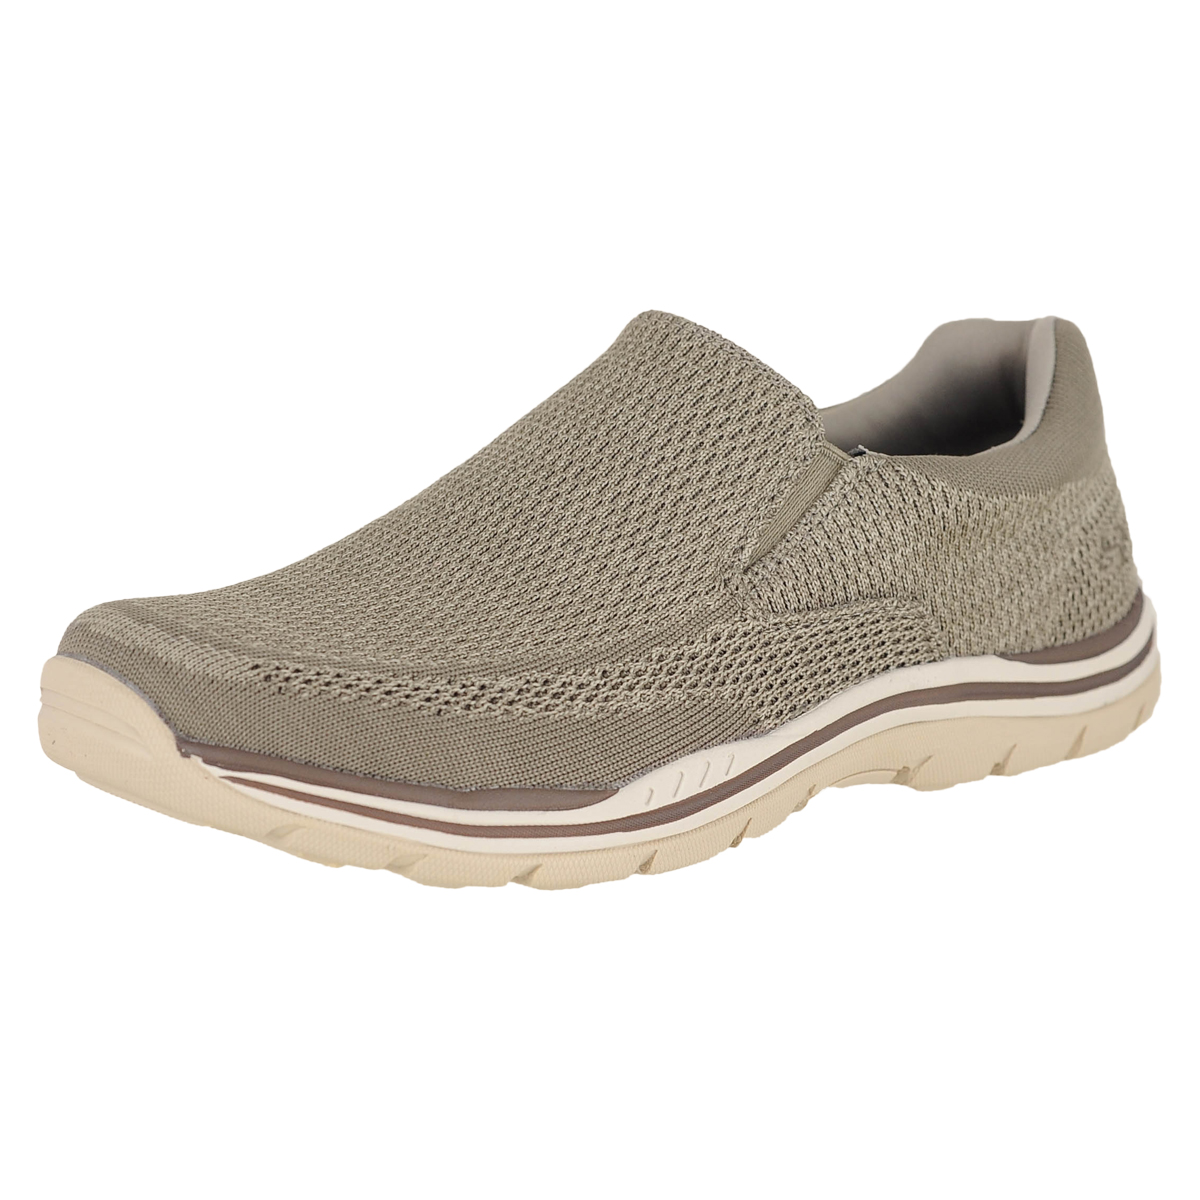 Details about Skechers Expected Gomel Taupe Mens Loafers Size 9M